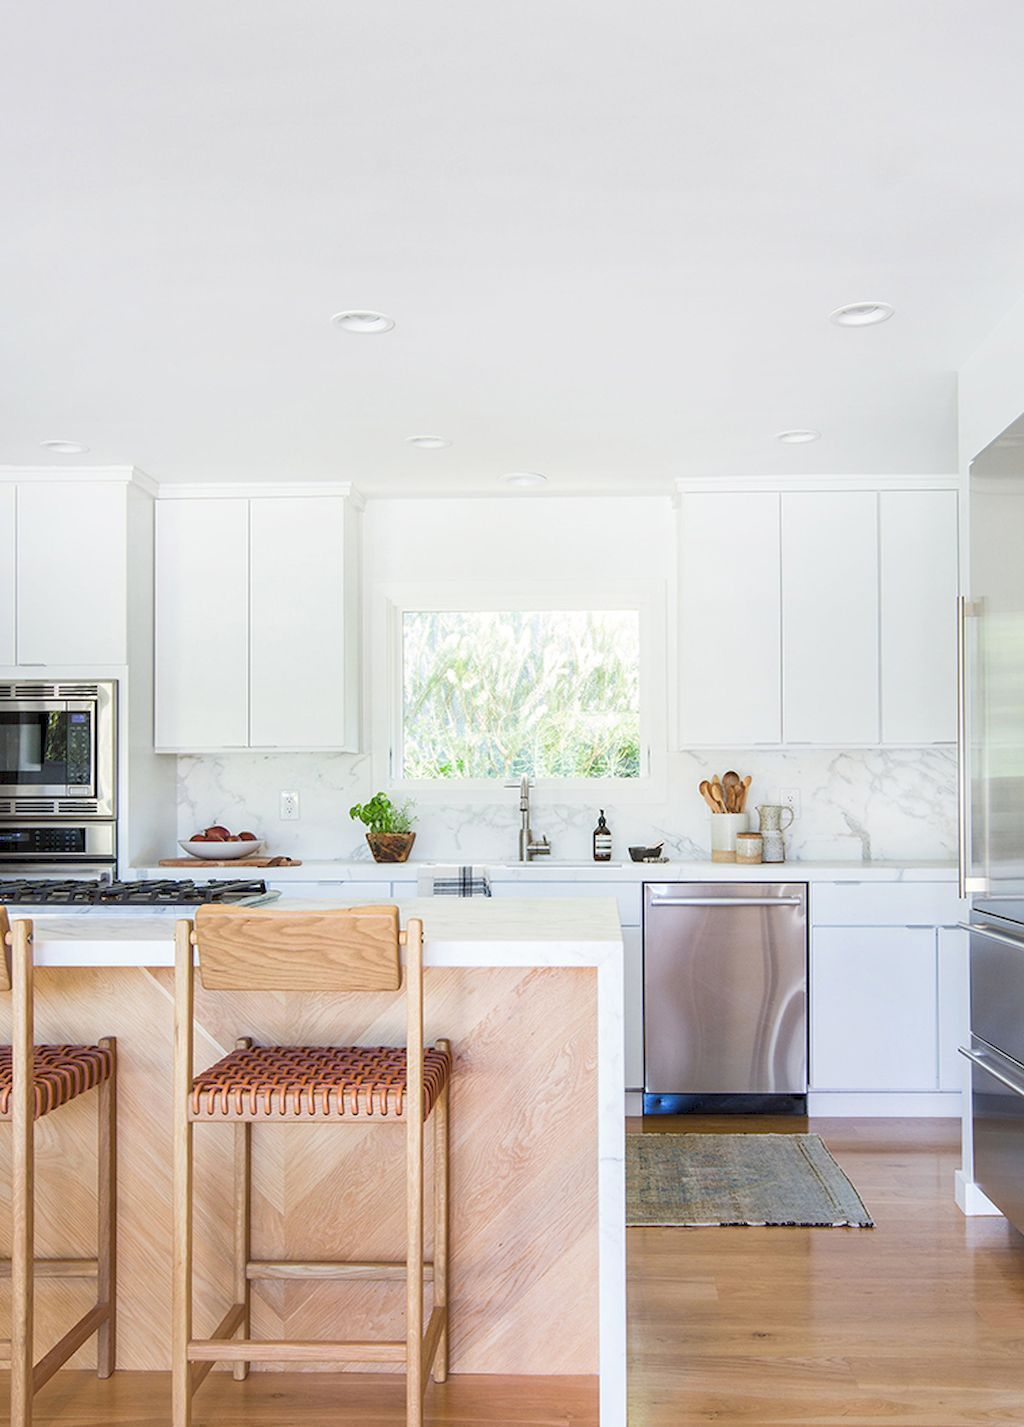 13 Uplifting Kitchen Remodel Anchorage Ideas In 2020 Kitchen Remodel Layout Ikea Kitchen Remodel Kitchen Cabinet Remodel